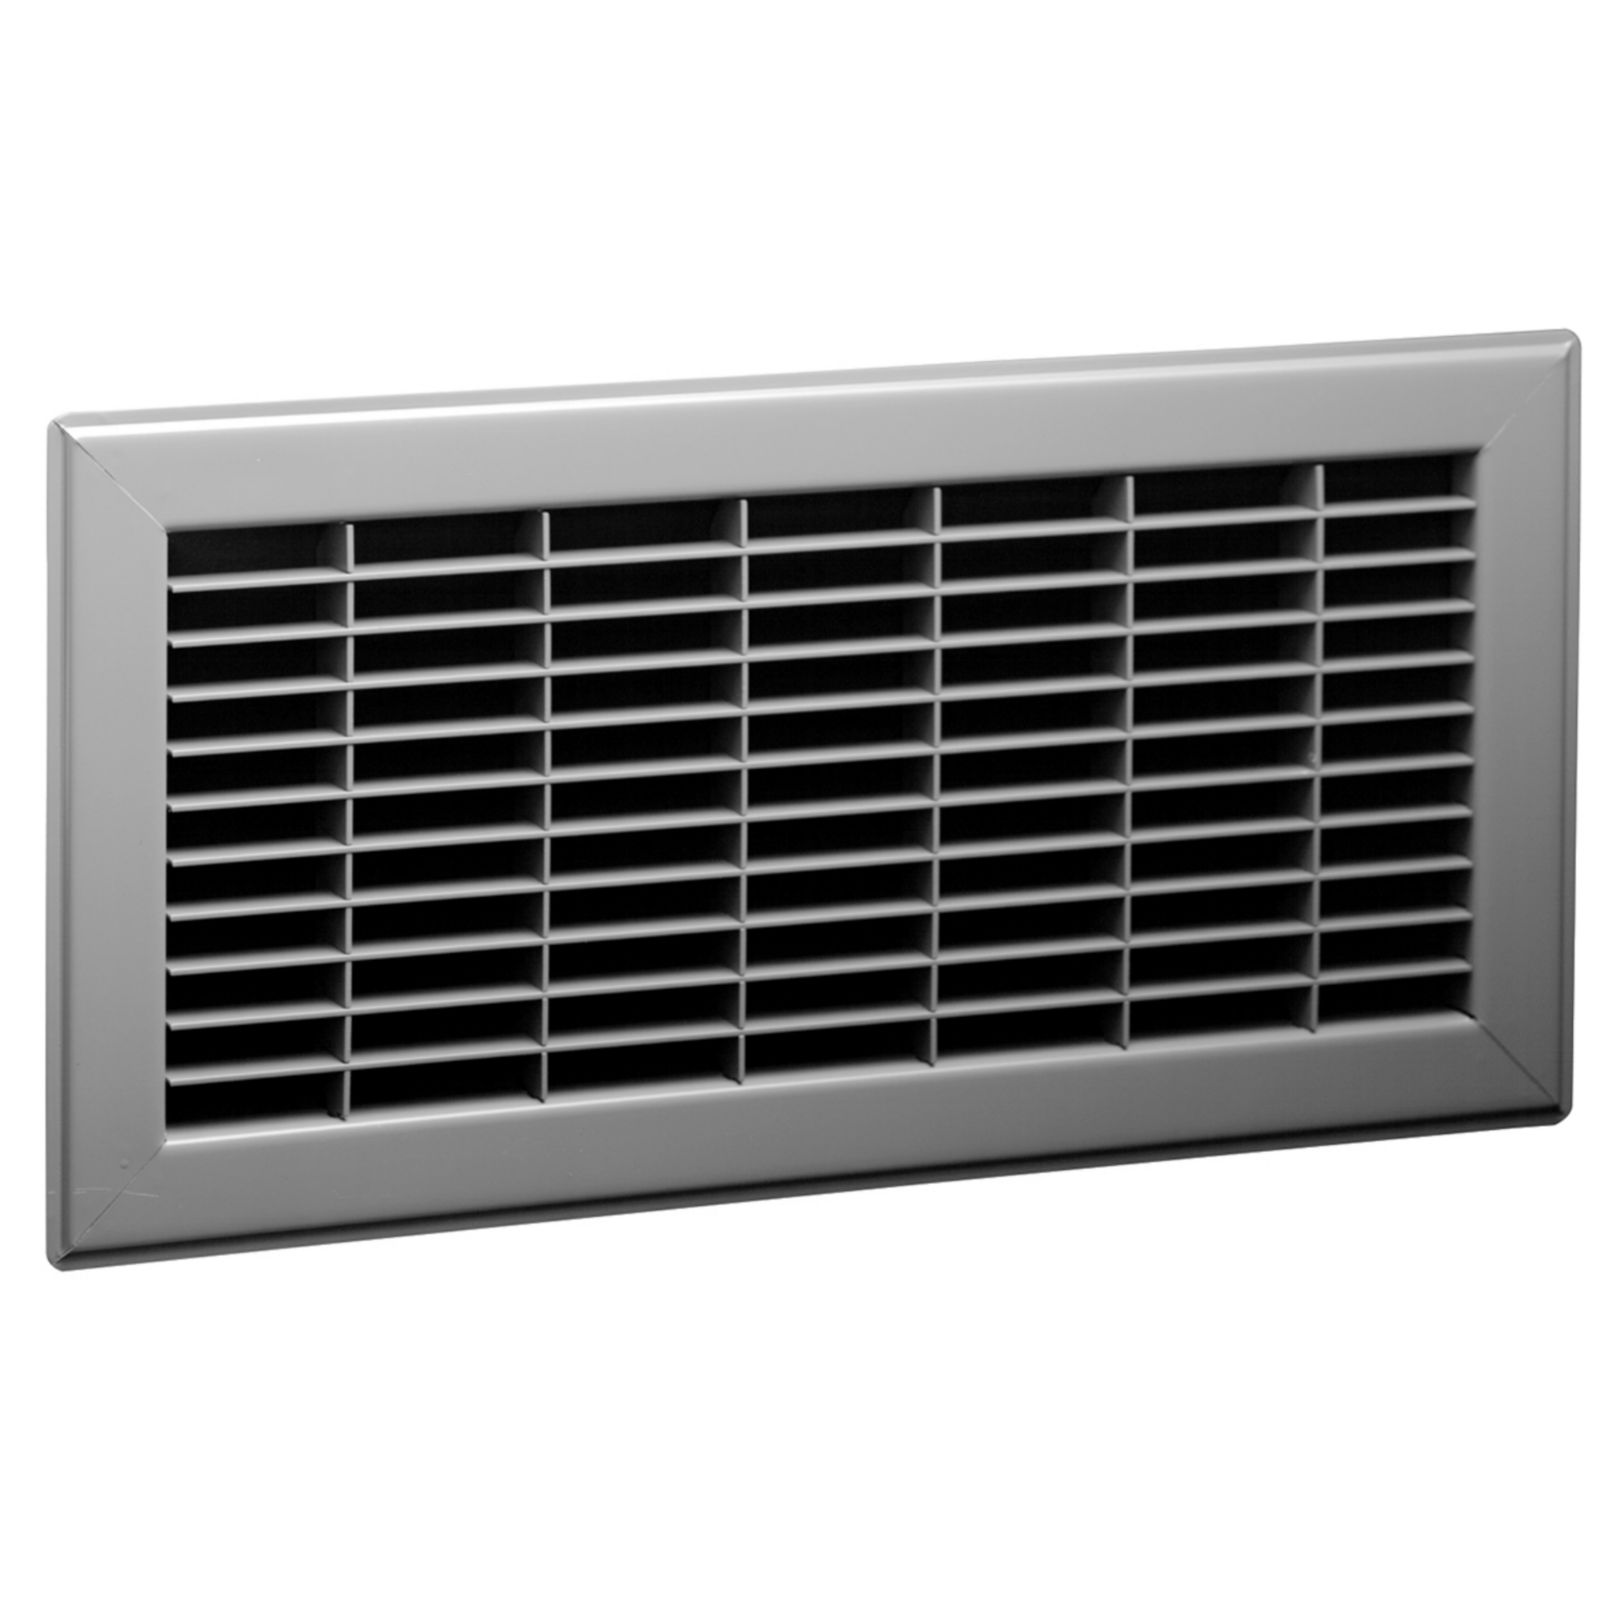 "Lima 16983 - #825 Return Floor Grille, Brown Finish, 20"" X 20"""